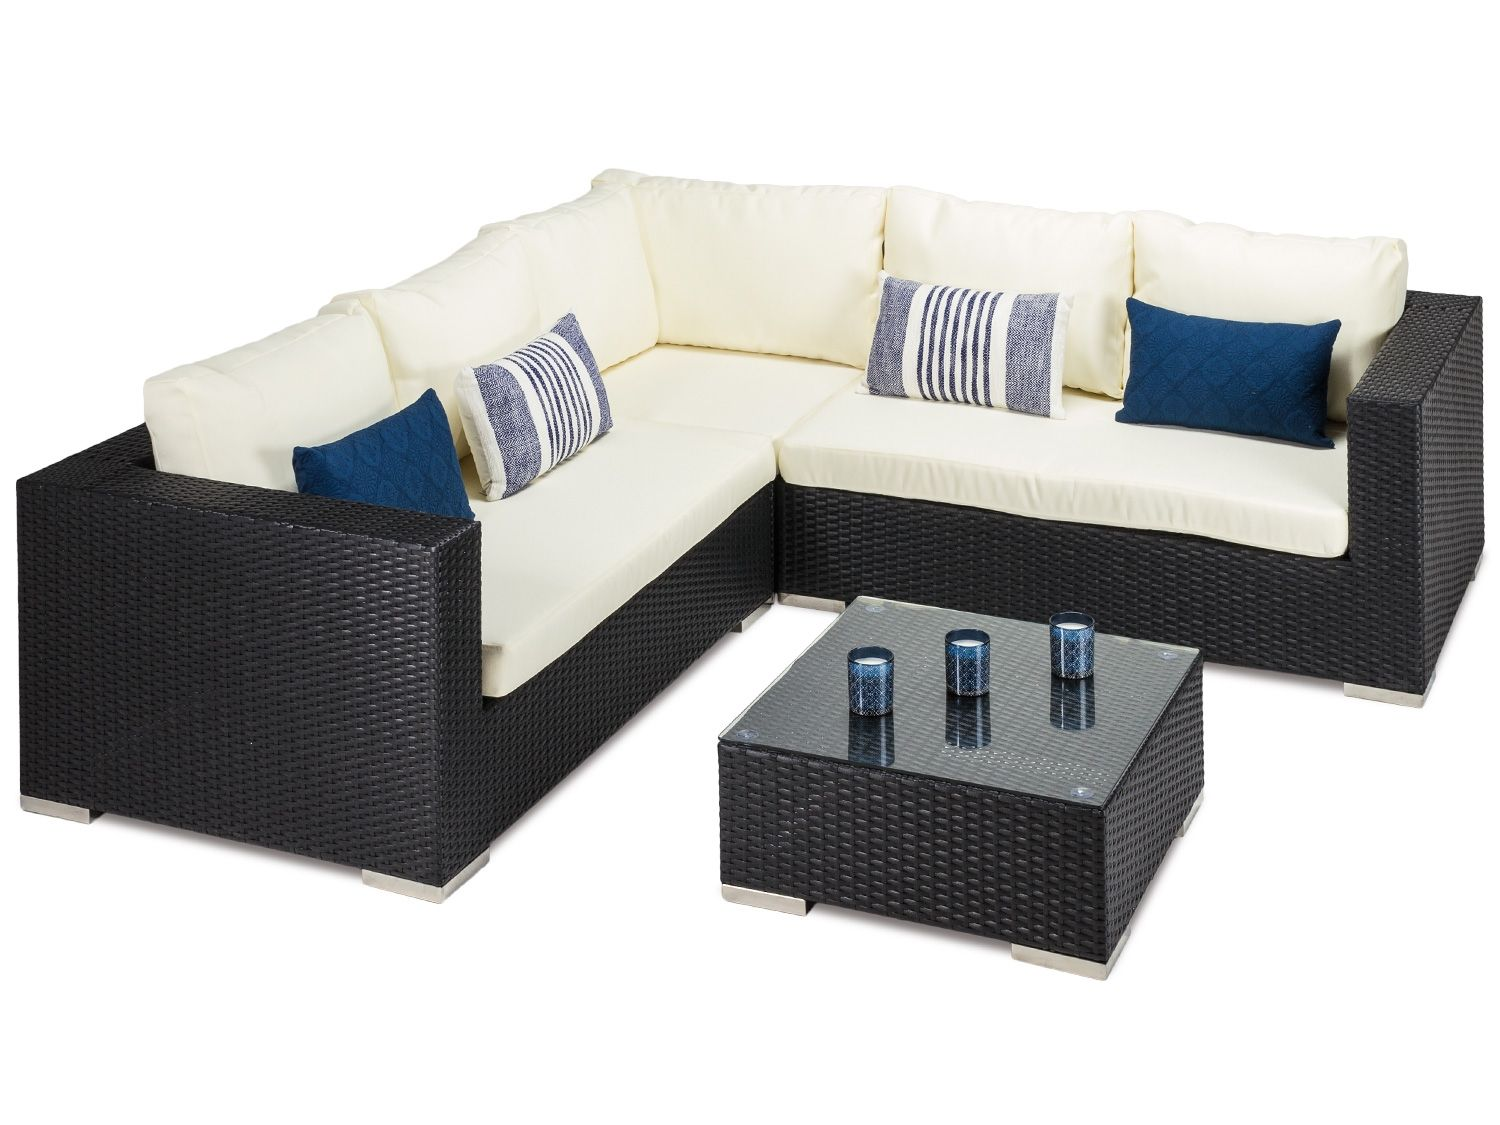 Black Rattan Garden Corner Sofa And Coffee Table All Weather Black Pe Rattan For Out Rattan Corner Sofa Black Rattan Garden Furniture Rattan Garden Corner Sofa - Dfs Garden Furniture Clearance